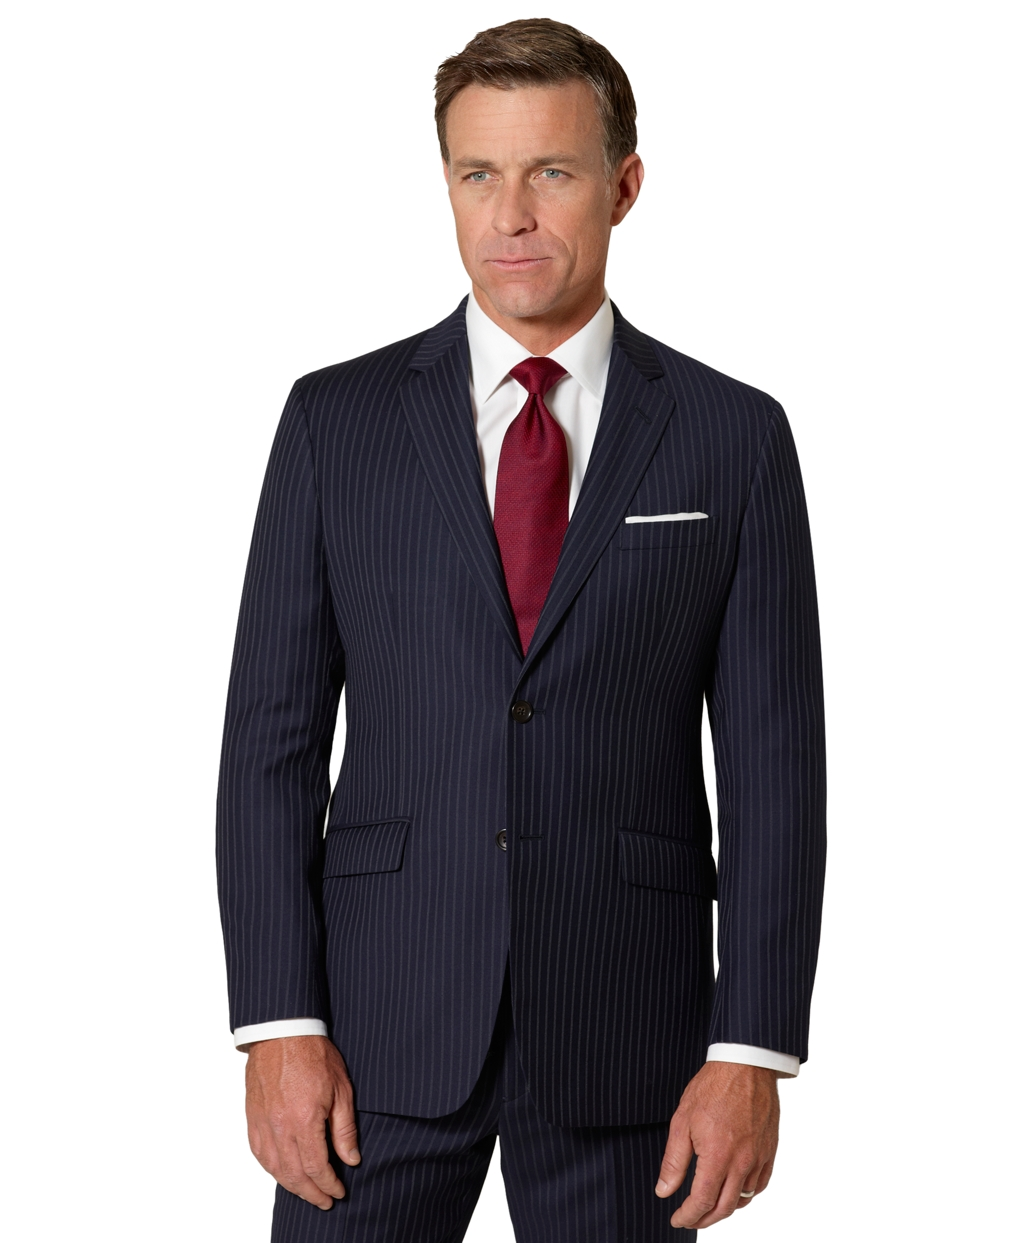 Is BB navy blue pin stripe suit okay for law firm interview?